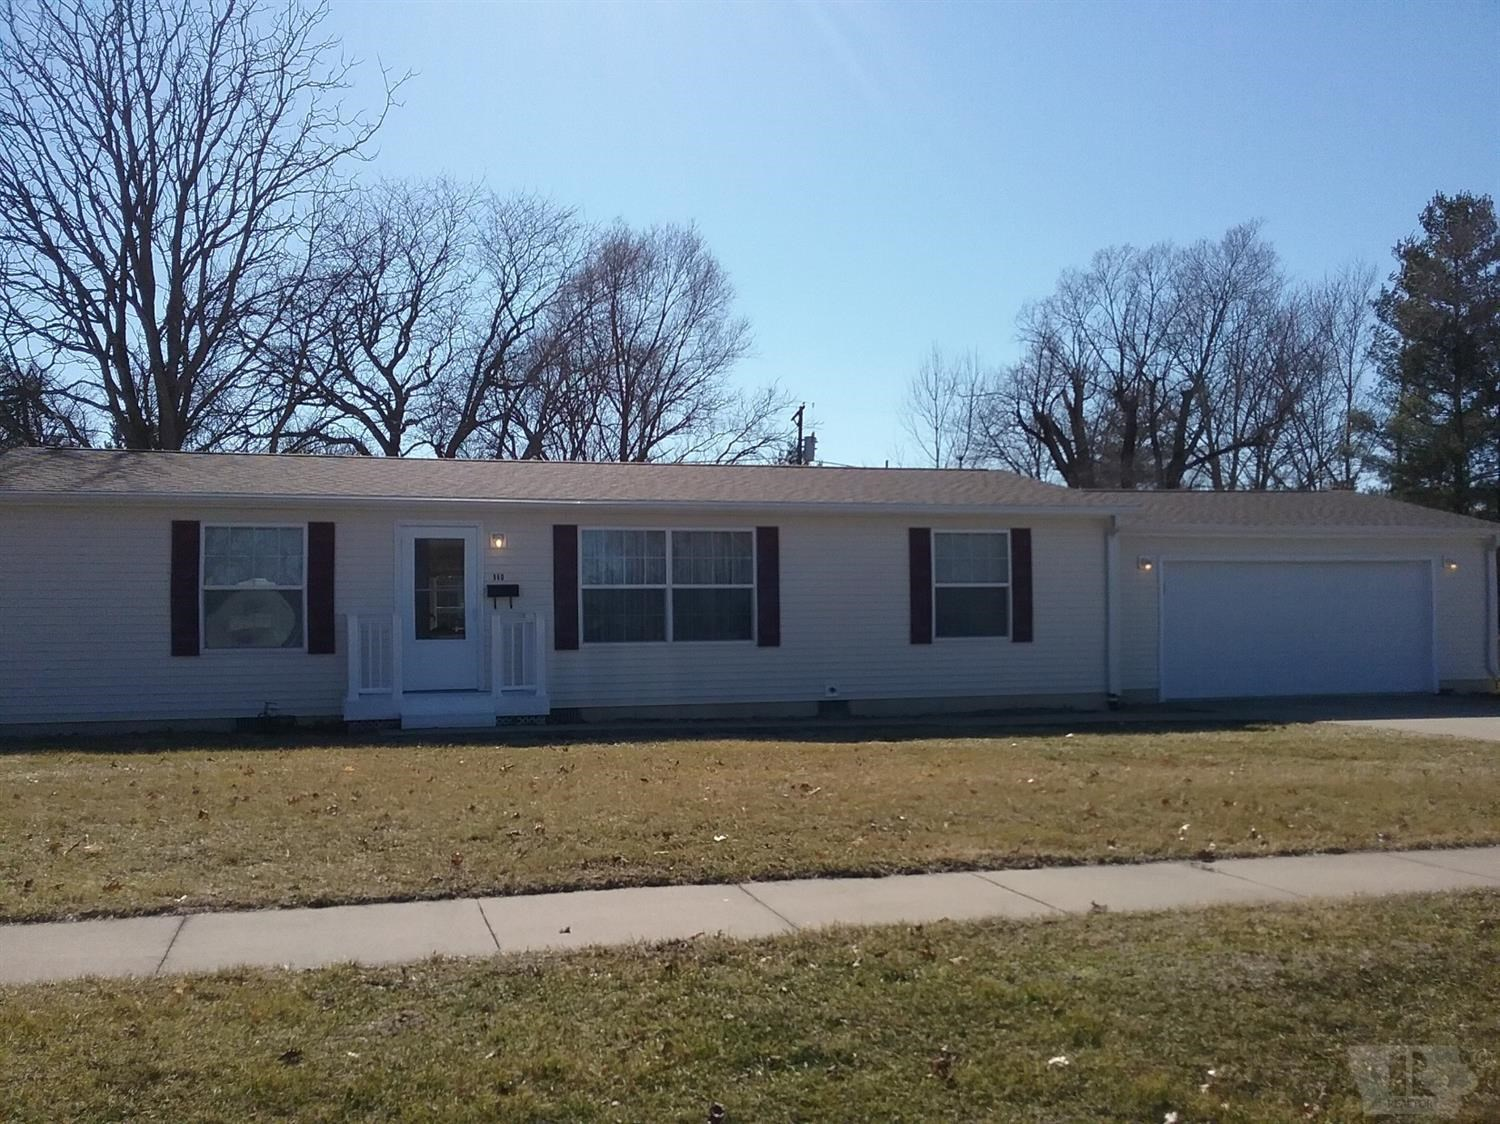 Home for Sale in Warsaw, IL